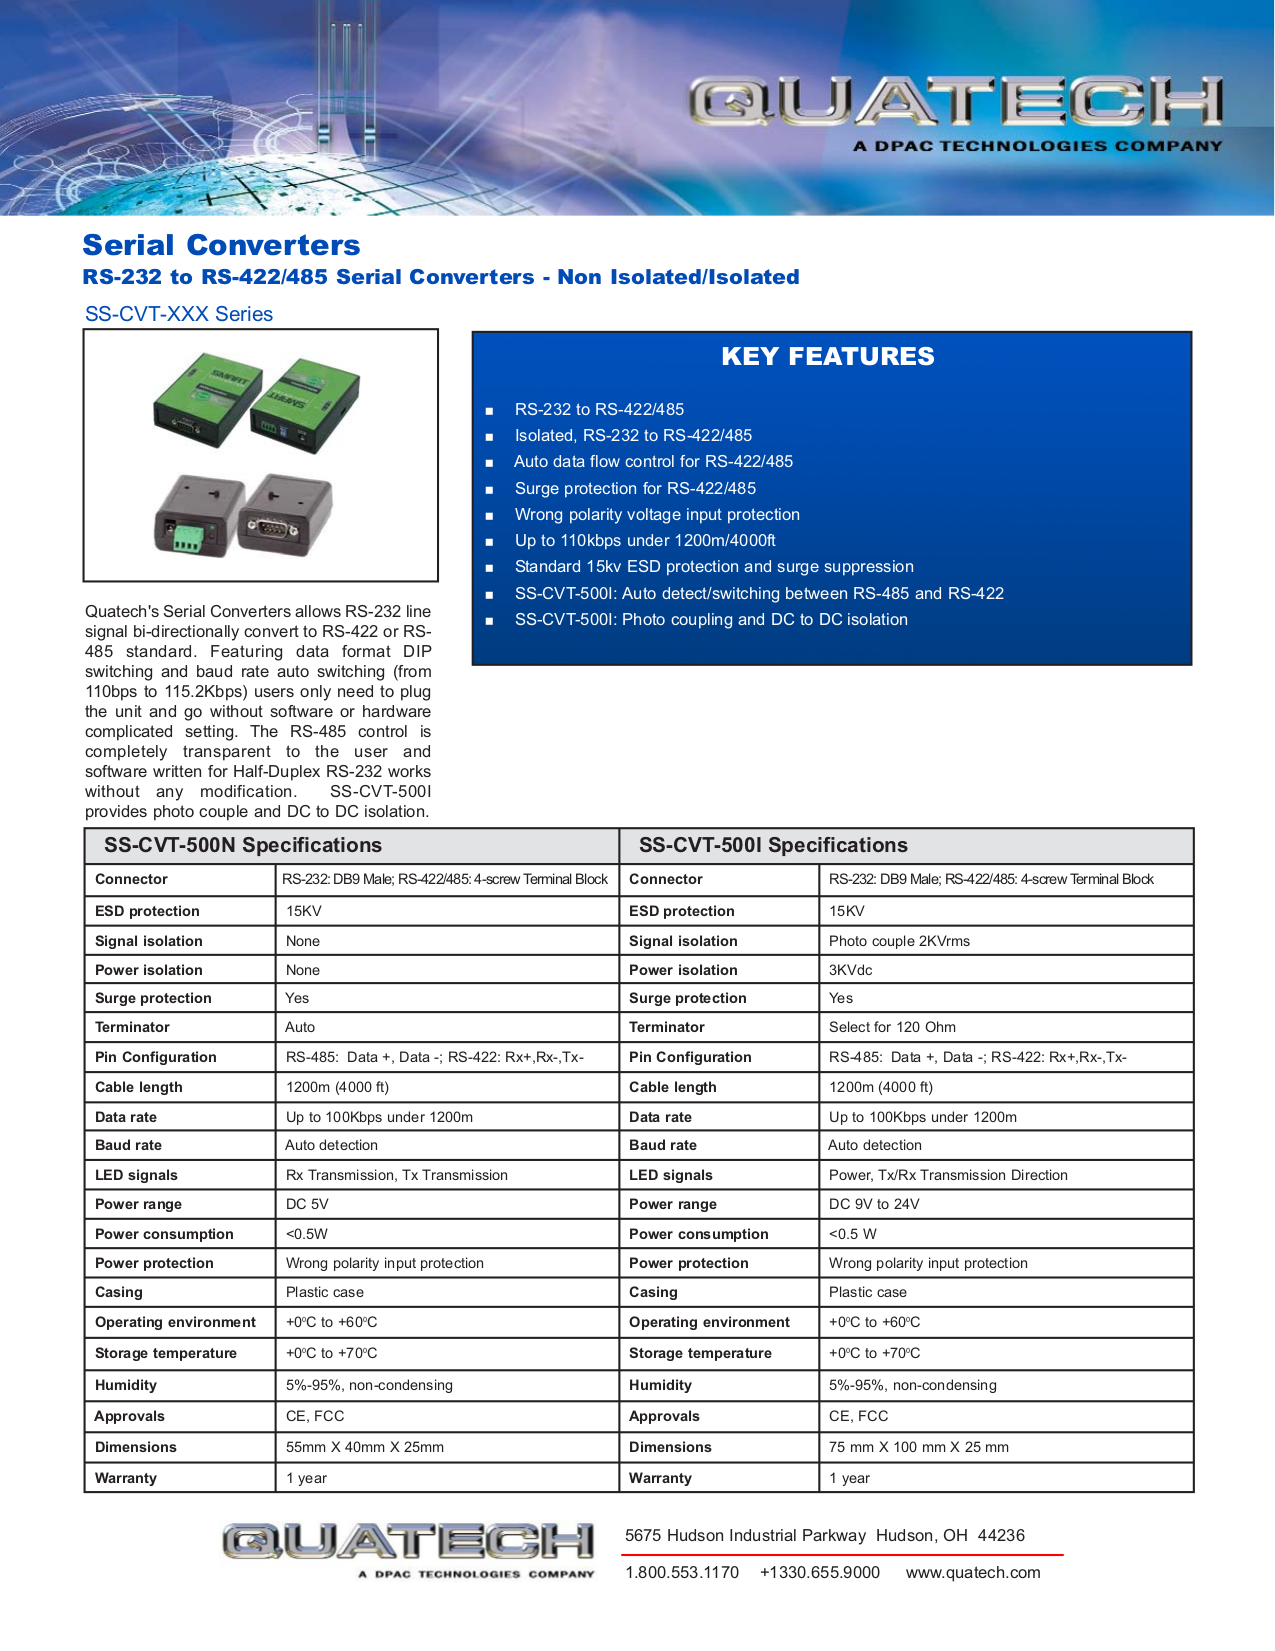 pdf for Quatech Other SS-CVT-500I Serial Converters manual